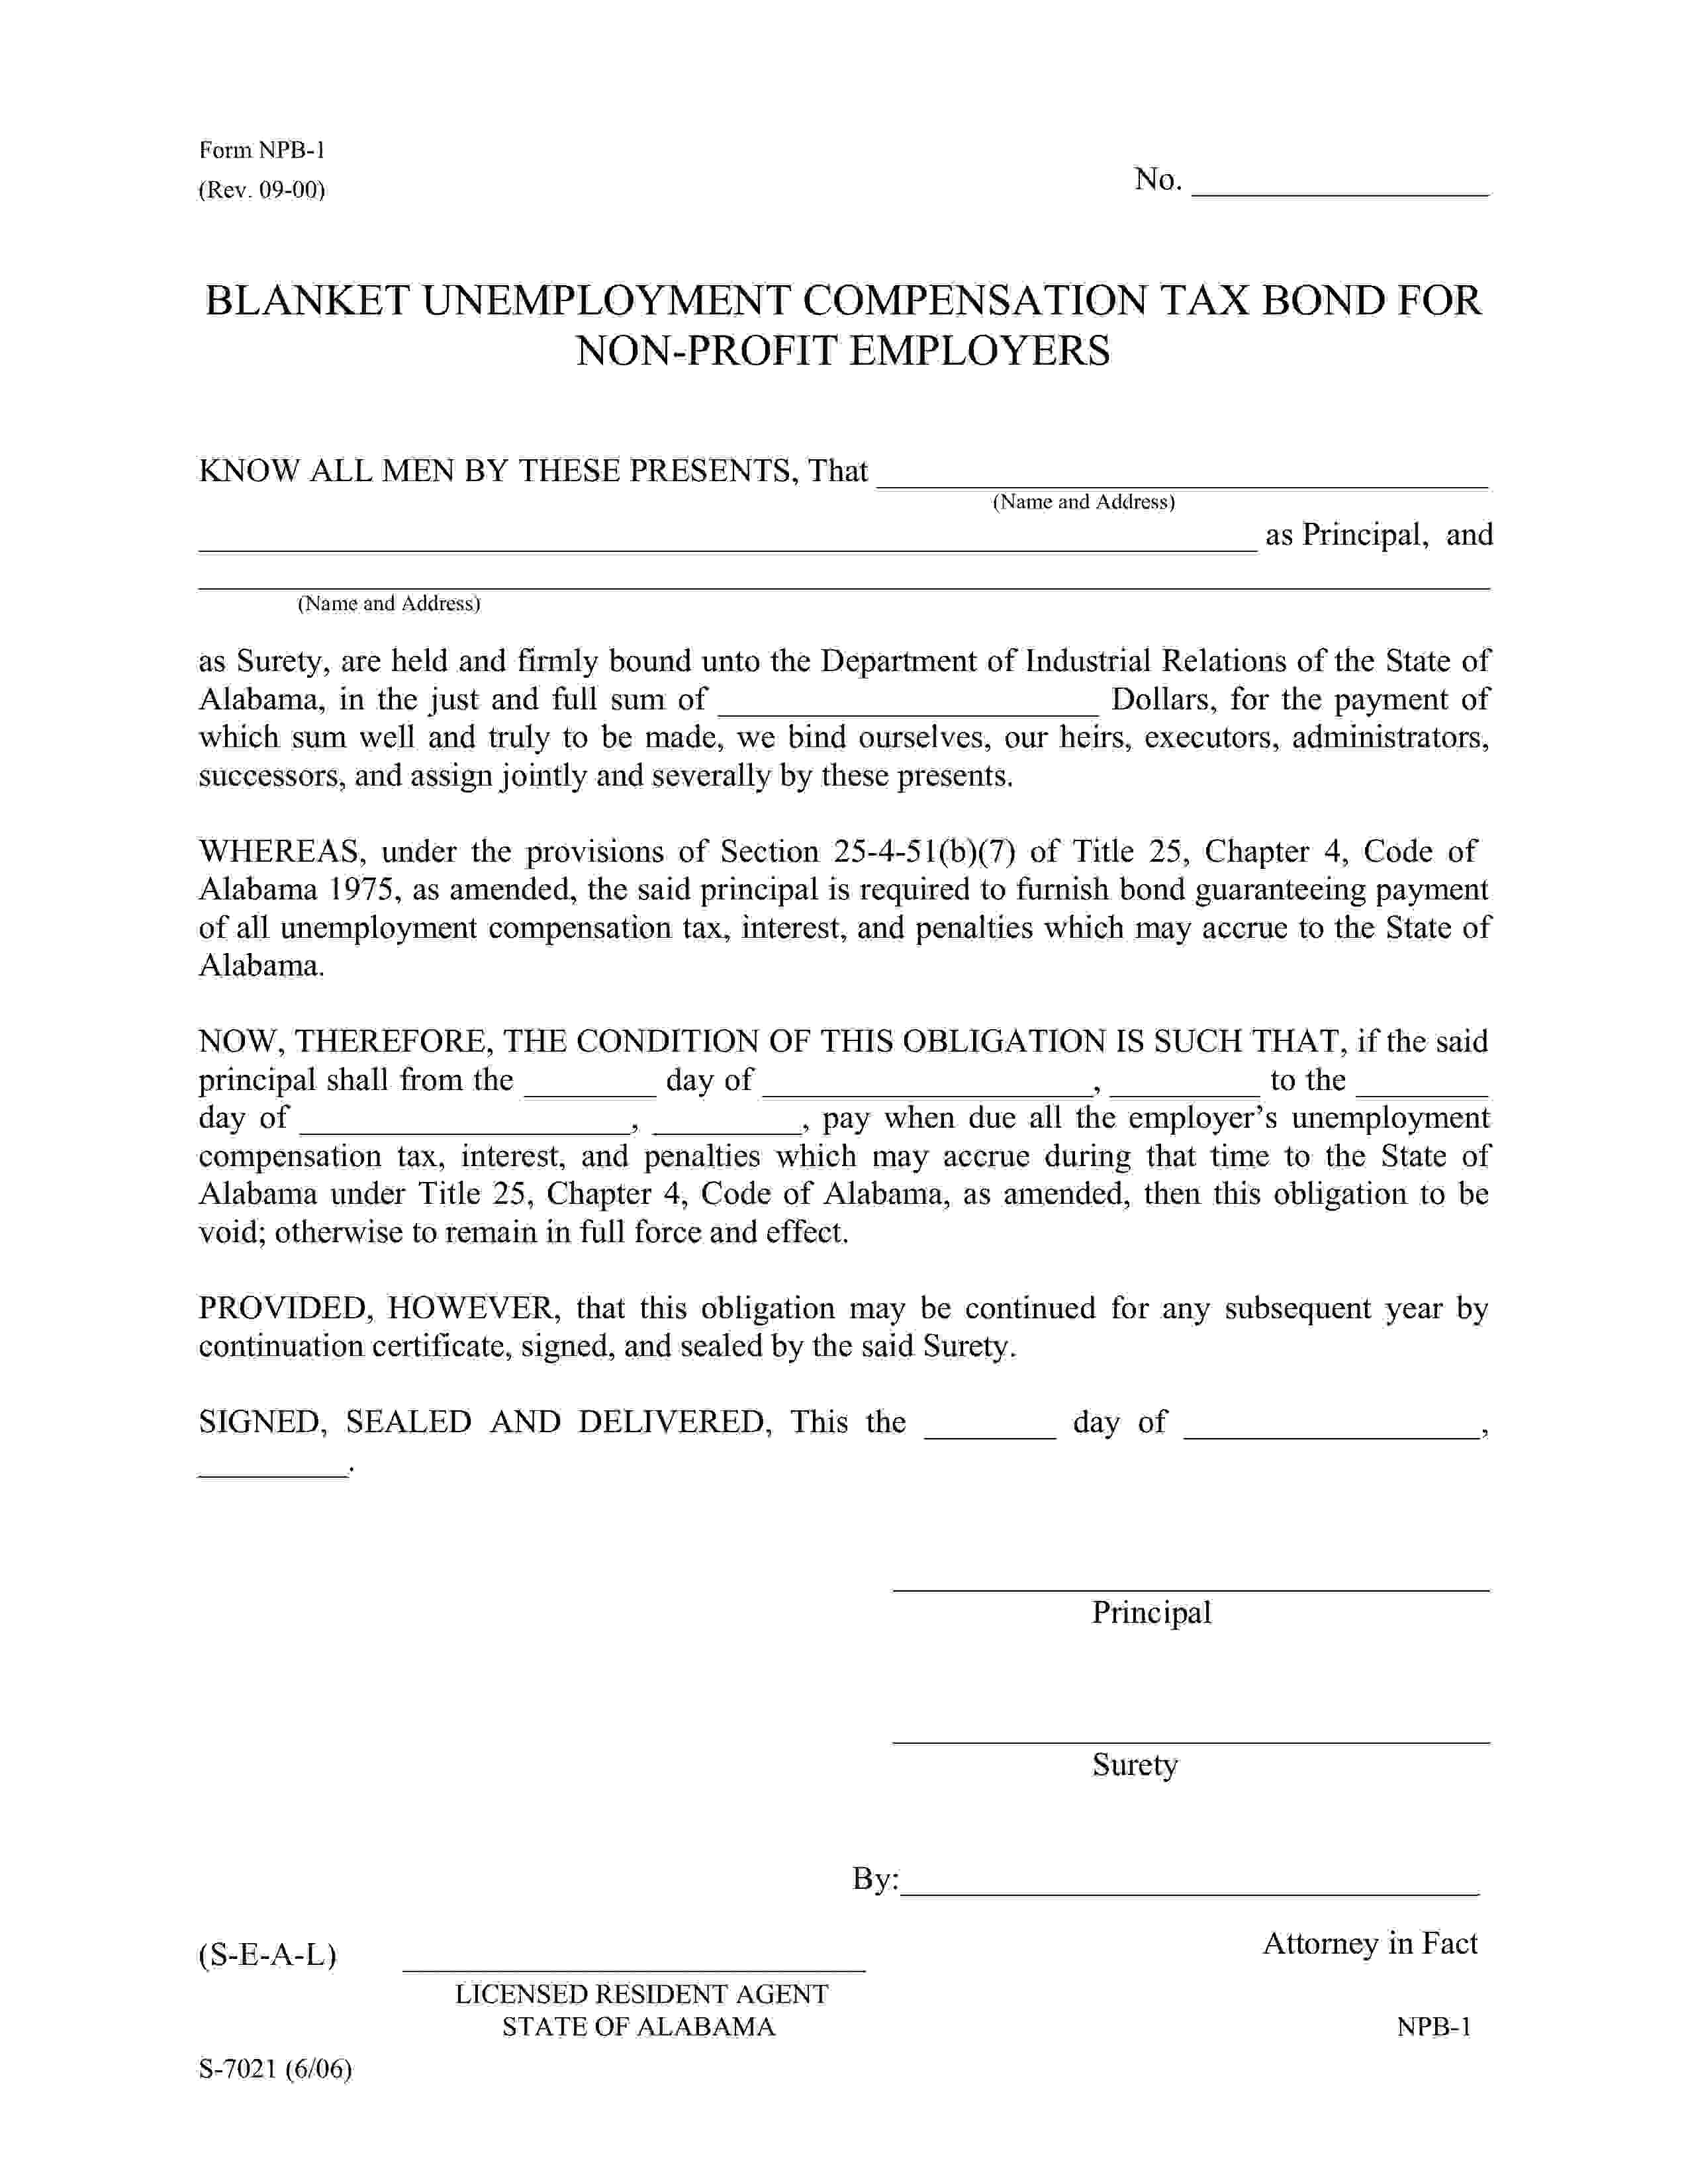 Department of Industrial Relations of the State of Alabama Blanket Unemployment Compensation Tax Bond sample image